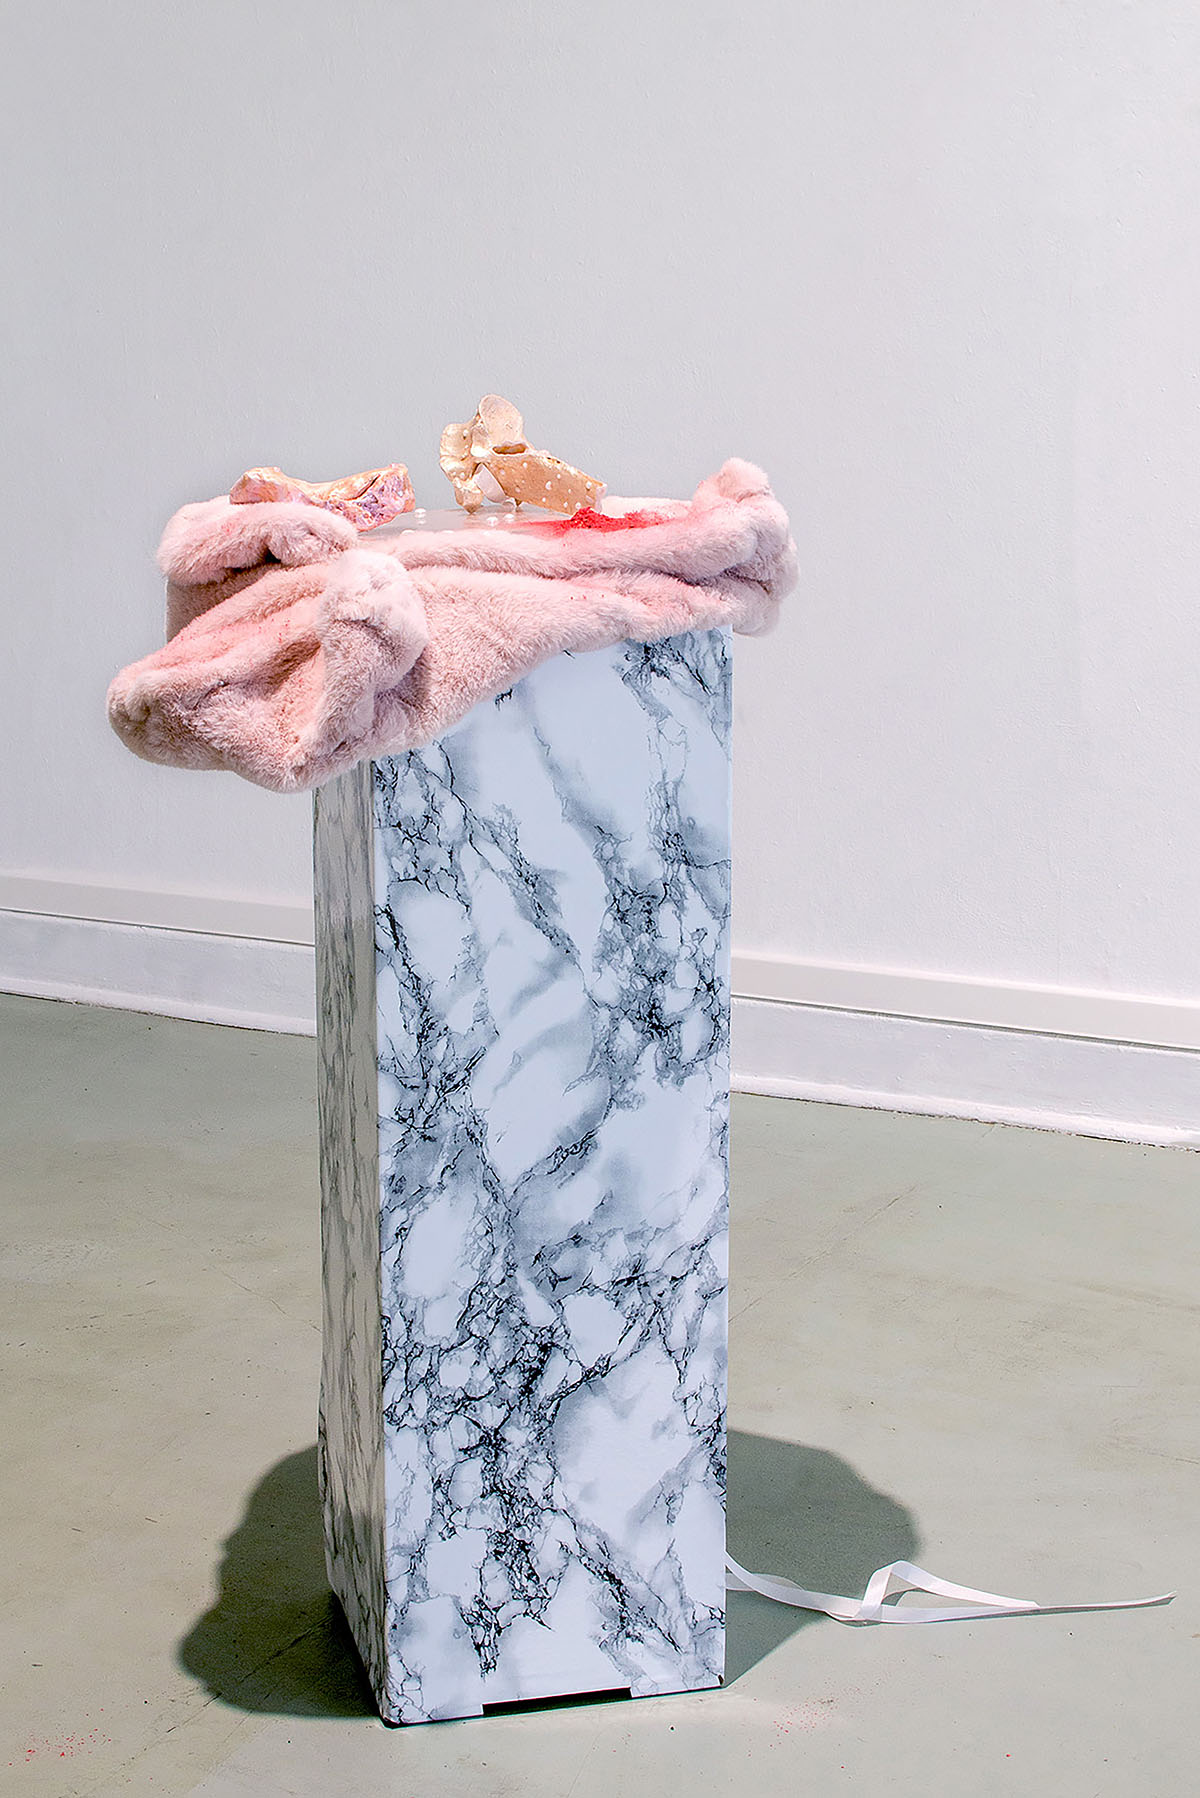 intentional and assured mortality, mixed media installation, 90cm x 30cm 32cm, 2021